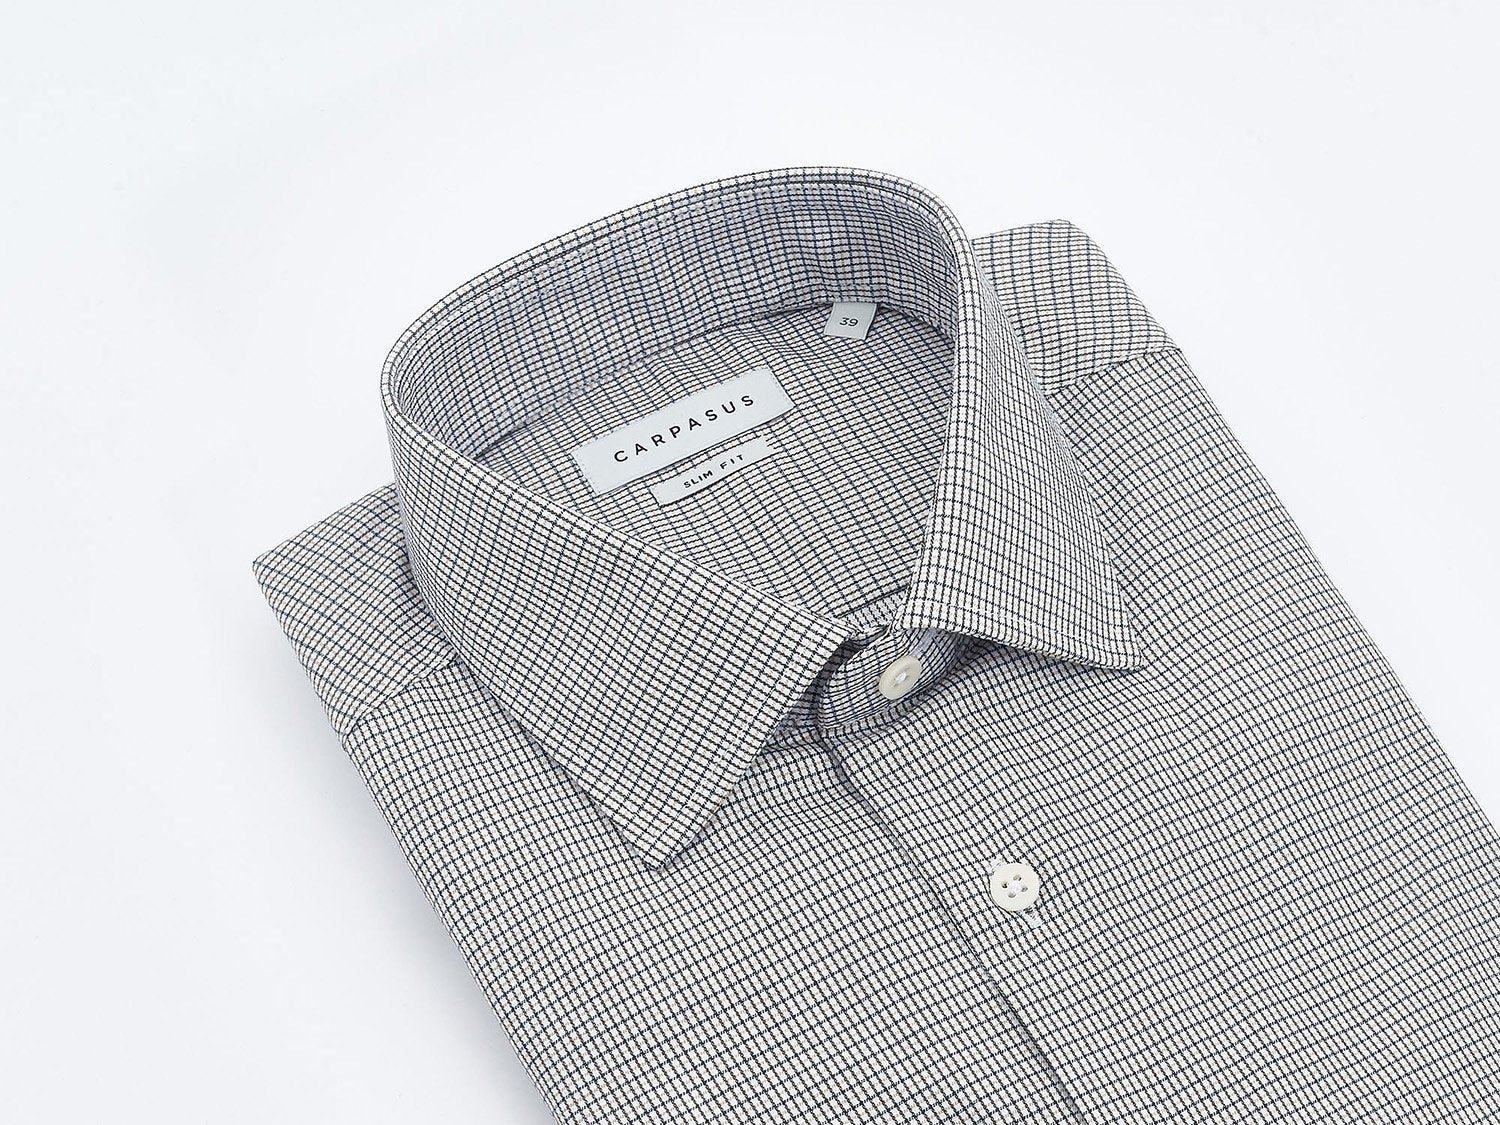 carpasus sustainable organic cotton tailor-made shirt black yellow check. Nachhaltiges Carpasus Masshemd aus Bio Baumwolle in Karo Schwarz Gelb